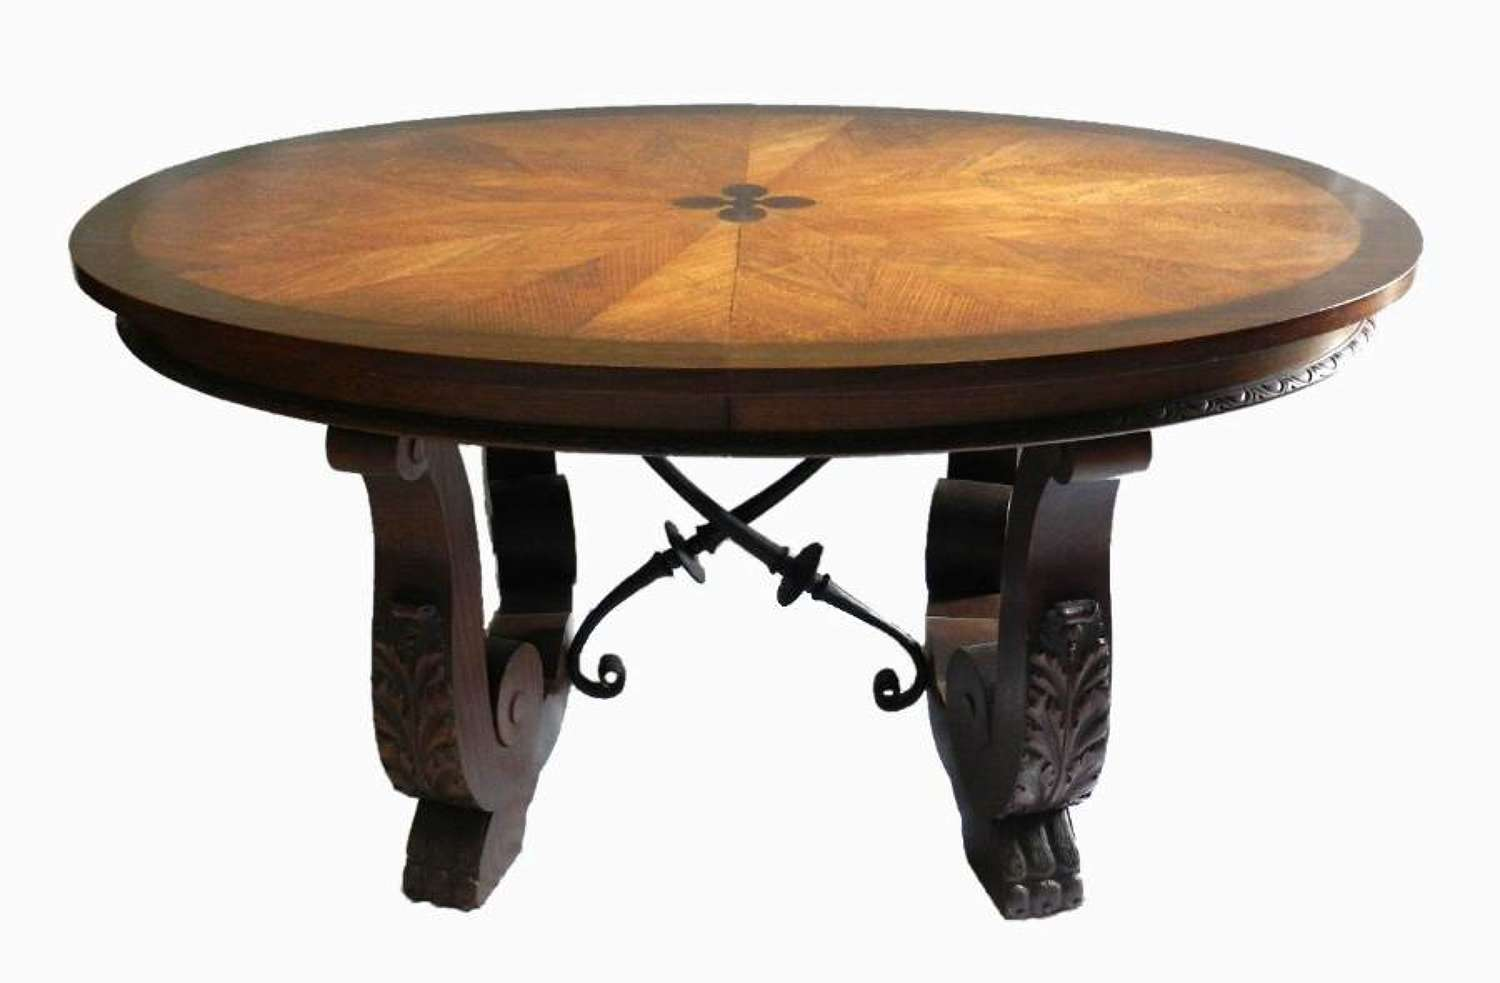 Unusual French Basque Spanish Centre / Dining Table Parquetry Inlaid Top